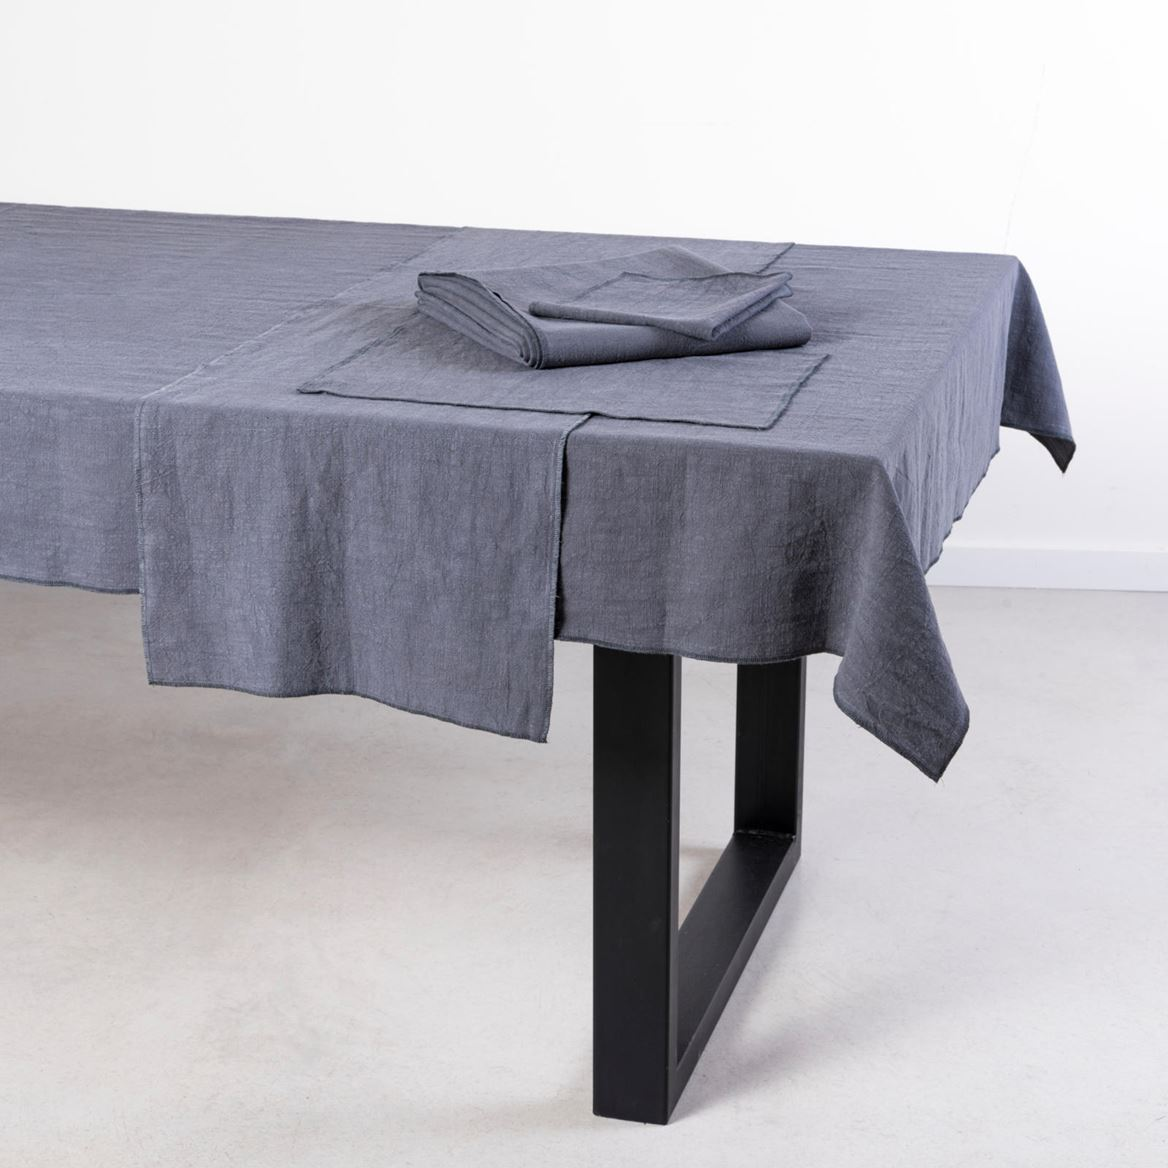 LUXALIN Mantel gris oscuro An. 135 x L 300 cm_luxalin-mantel-gris-oscuro-an--135-x-l-300-cm